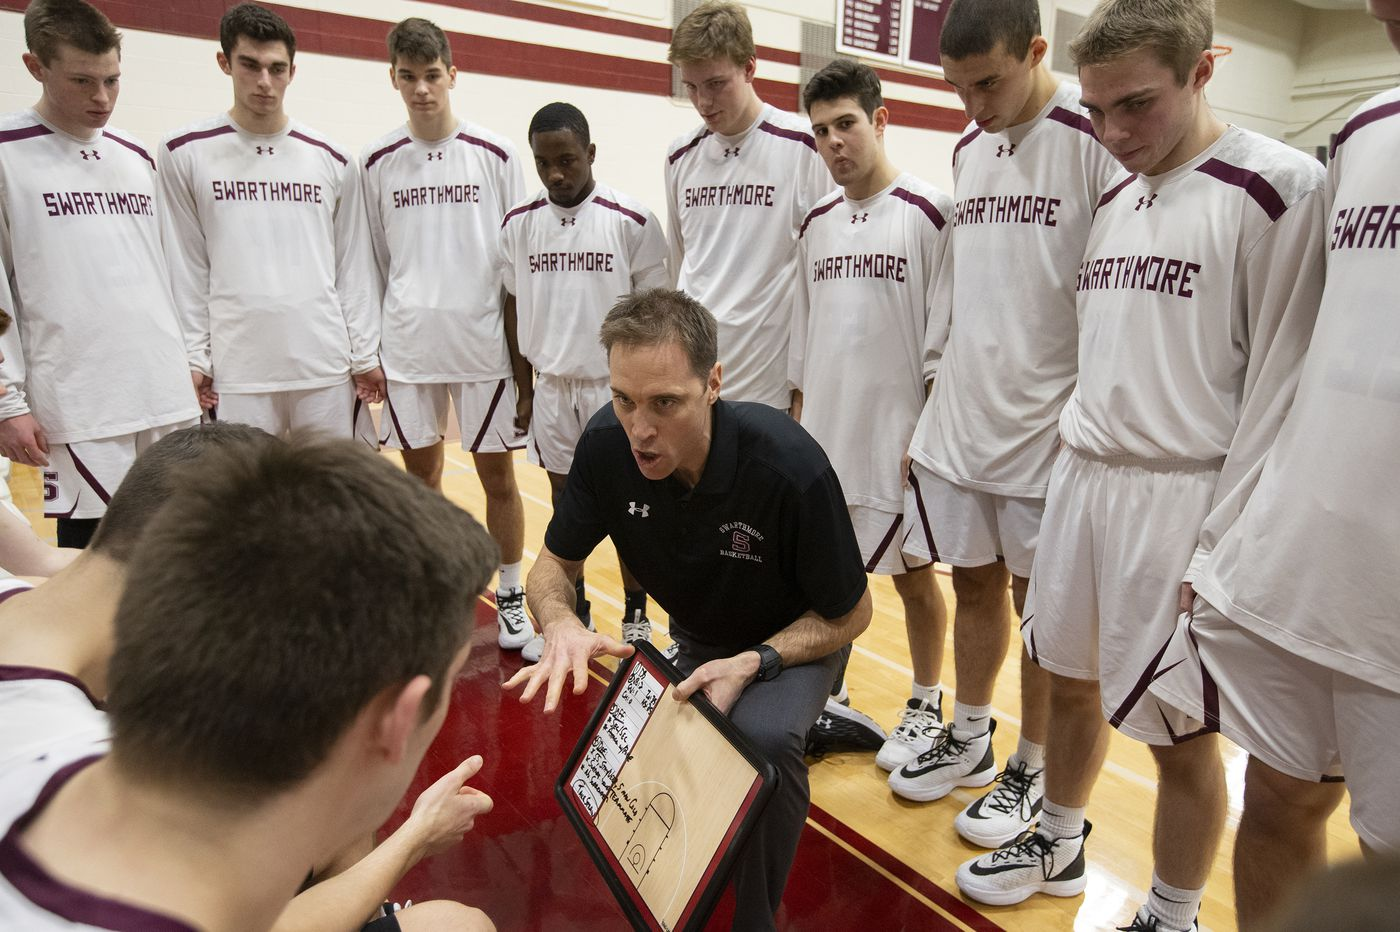 When will we see Swarthmore hoops again? Not this academic year | Mike Jensen